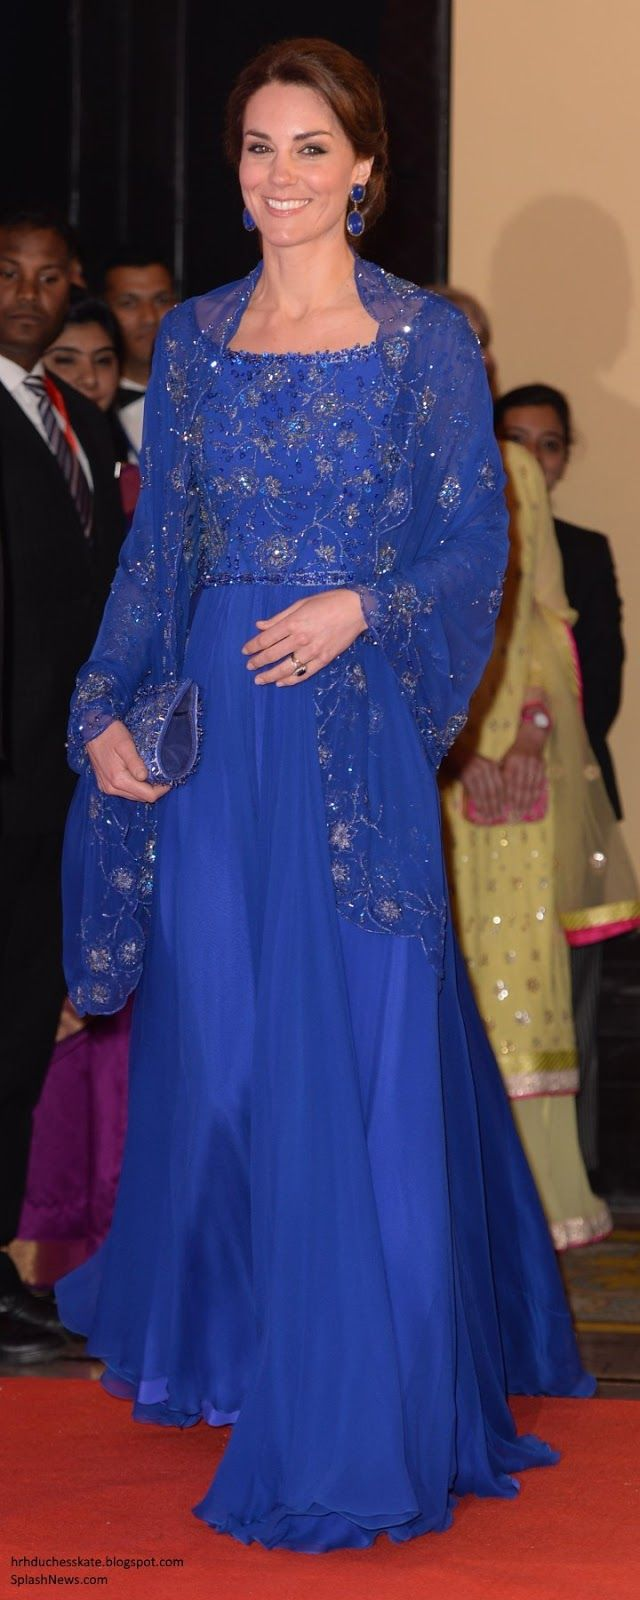 hrhduchesskate: Royal Tour 2016-Bollywood Reception, Mumbai, India, April 10, 2016-The Duchess of Cambridge wore a bespoke sapphire blue gown by Jenny Packham, with hand beading worked in India, accessorized with a custom evening bag and Lapis and Diamond Double DropEarrings earrings by Indian jeweller Amrapali